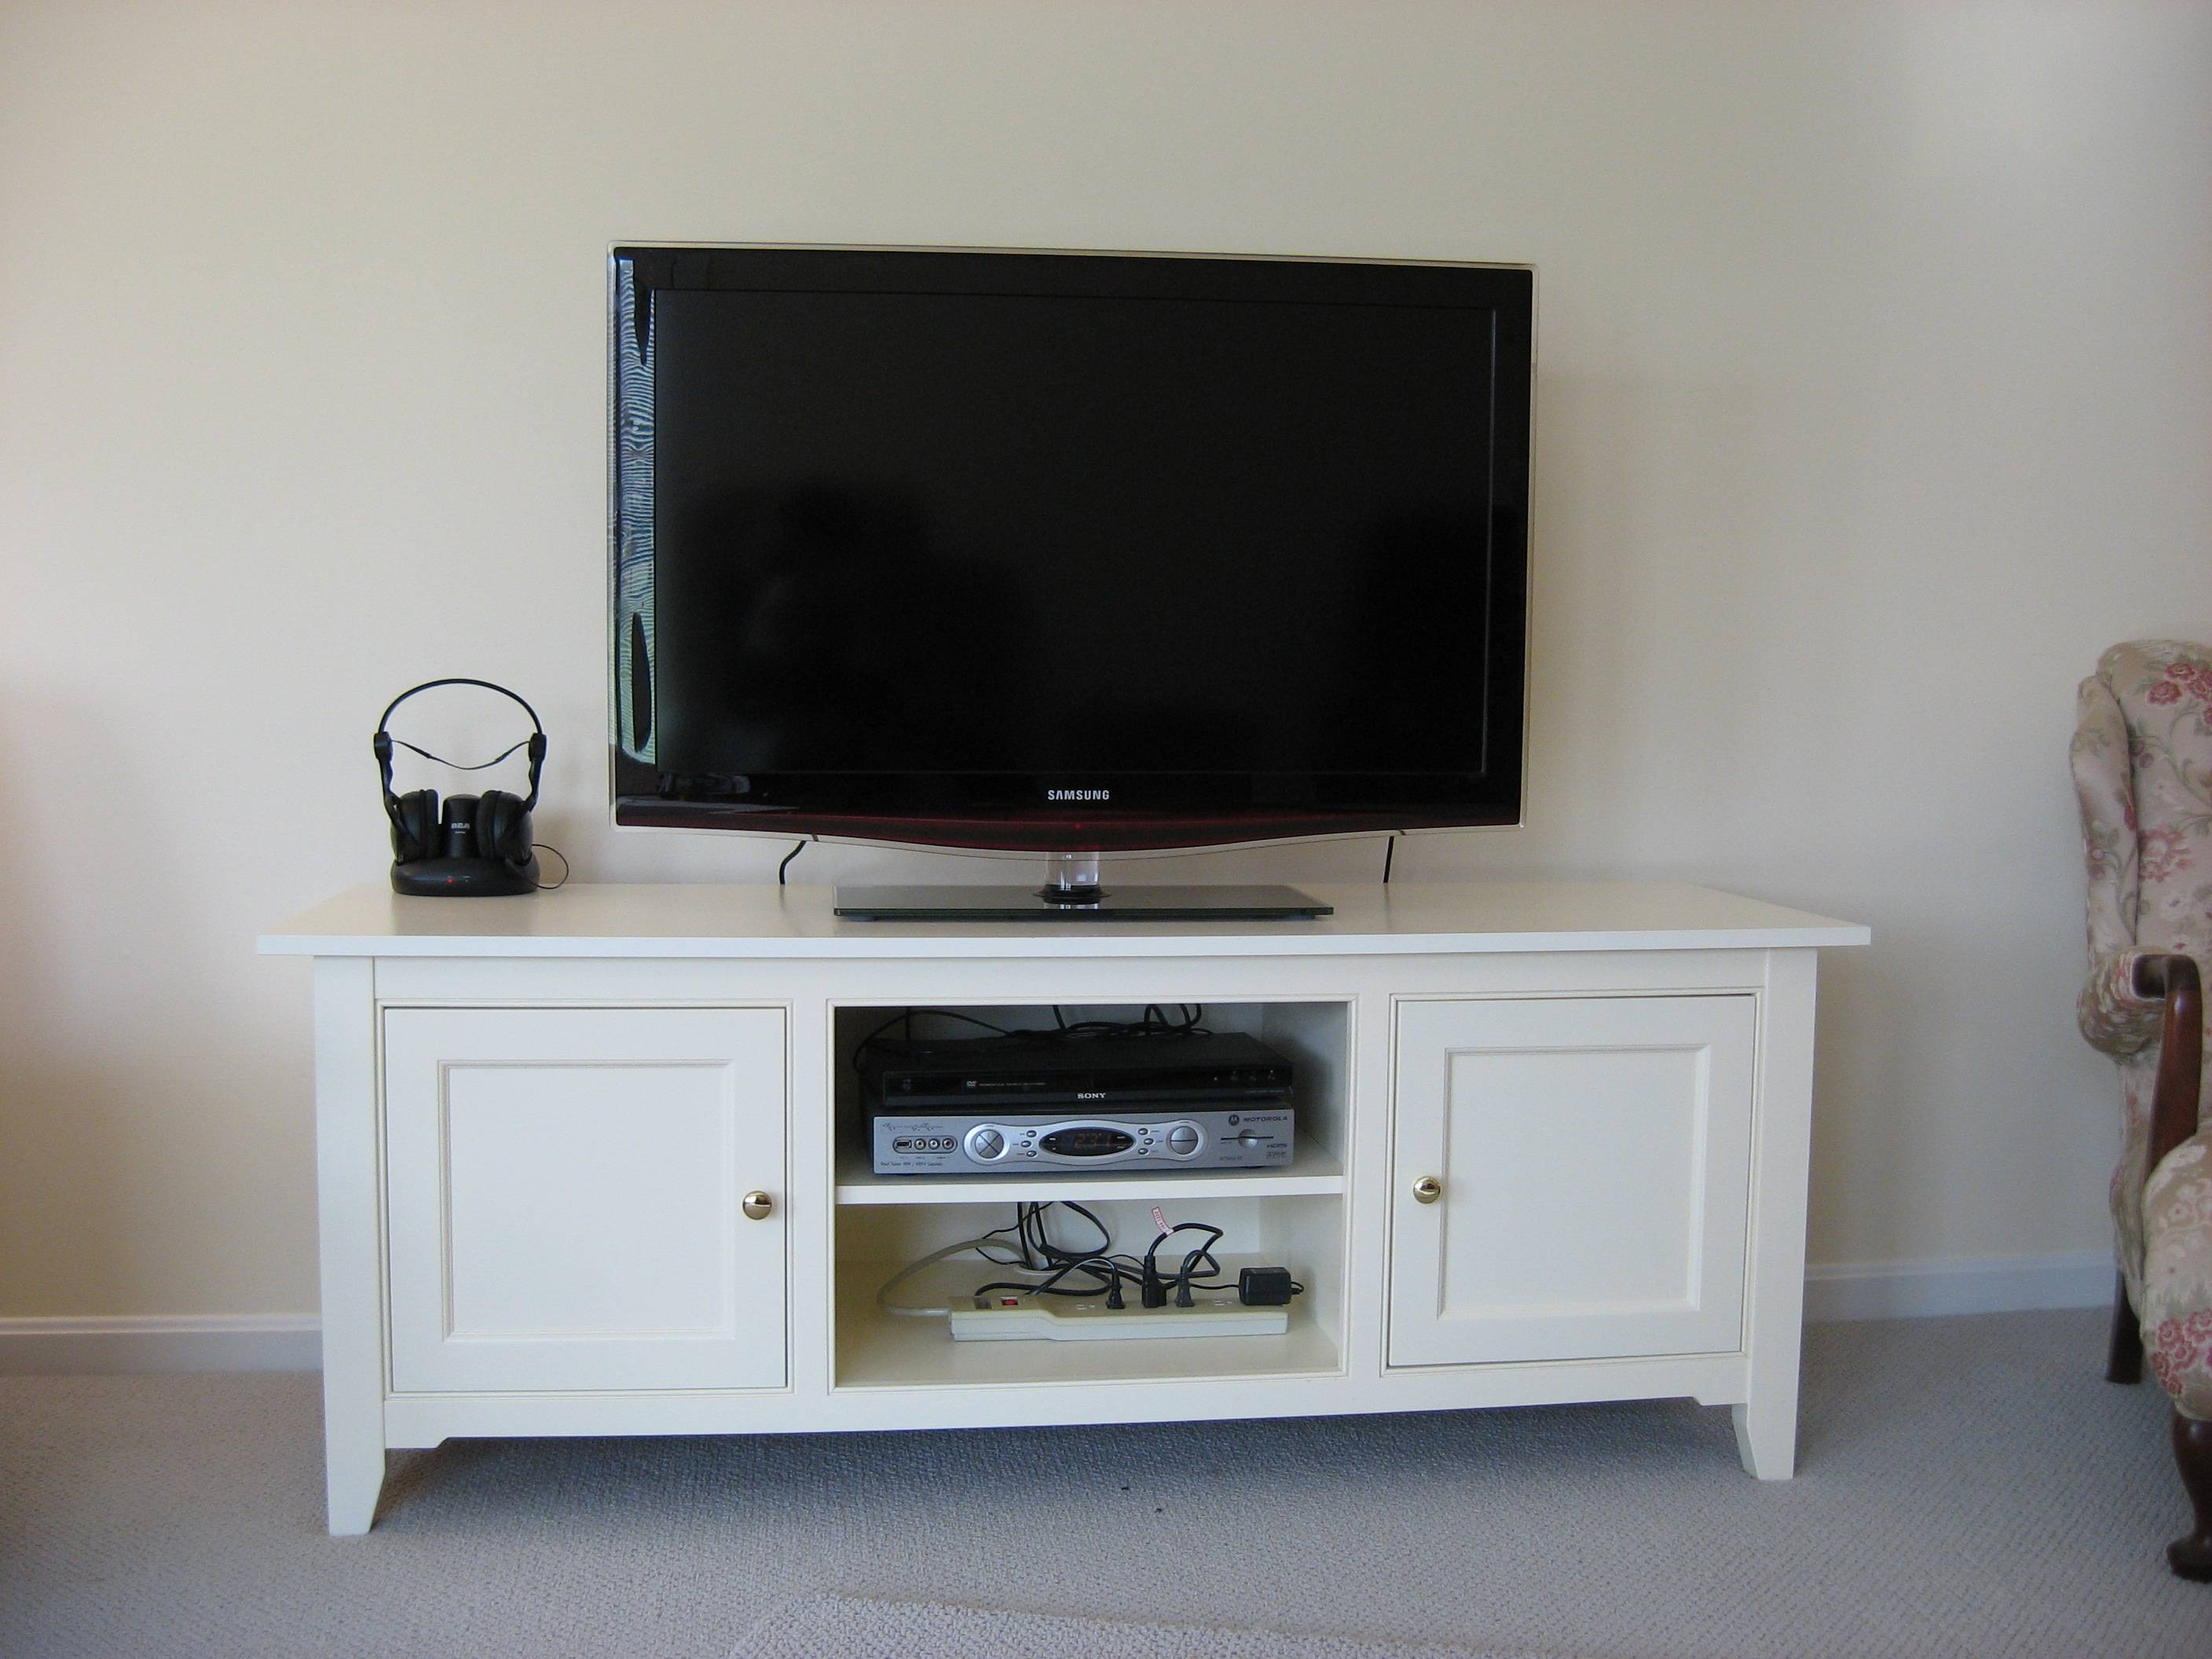 Tv Stands On Sale, Tv Stands 10 Inspiring White Lacquer Tv Stand with regard to Large White Tv Stands (Image 13 of 15)